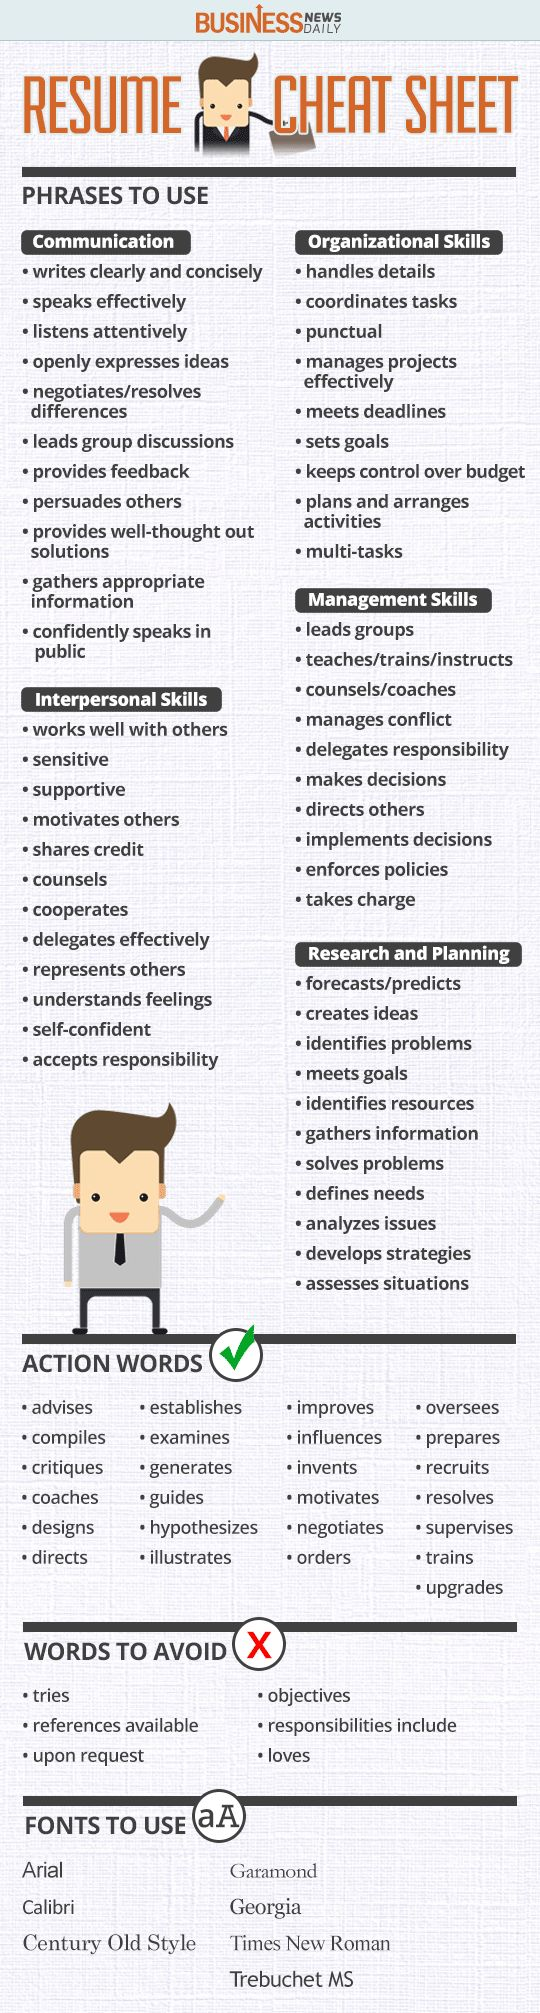 Opposenewapstandardsus  Personable  Ideas About Resume On Pinterest  Cv Format Resume Cv And  With Great Resume Cheat Sheet Infographic Andrews Almost Done With A Complete Unit On Employment Which With Amusing Non Profit Resume Sample Also High School Graduate Resume With No Work Experience In Addition Worship Pastor Resume And Nurse Practitioner Resumes As Well As Cornell Resume Builder Additionally First Time Resume Templates From Pinterestcom With Opposenewapstandardsus  Great  Ideas About Resume On Pinterest  Cv Format Resume Cv And  With Amusing Resume Cheat Sheet Infographic Andrews Almost Done With A Complete Unit On Employment Which And Personable Non Profit Resume Sample Also High School Graduate Resume With No Work Experience In Addition Worship Pastor Resume From Pinterestcom